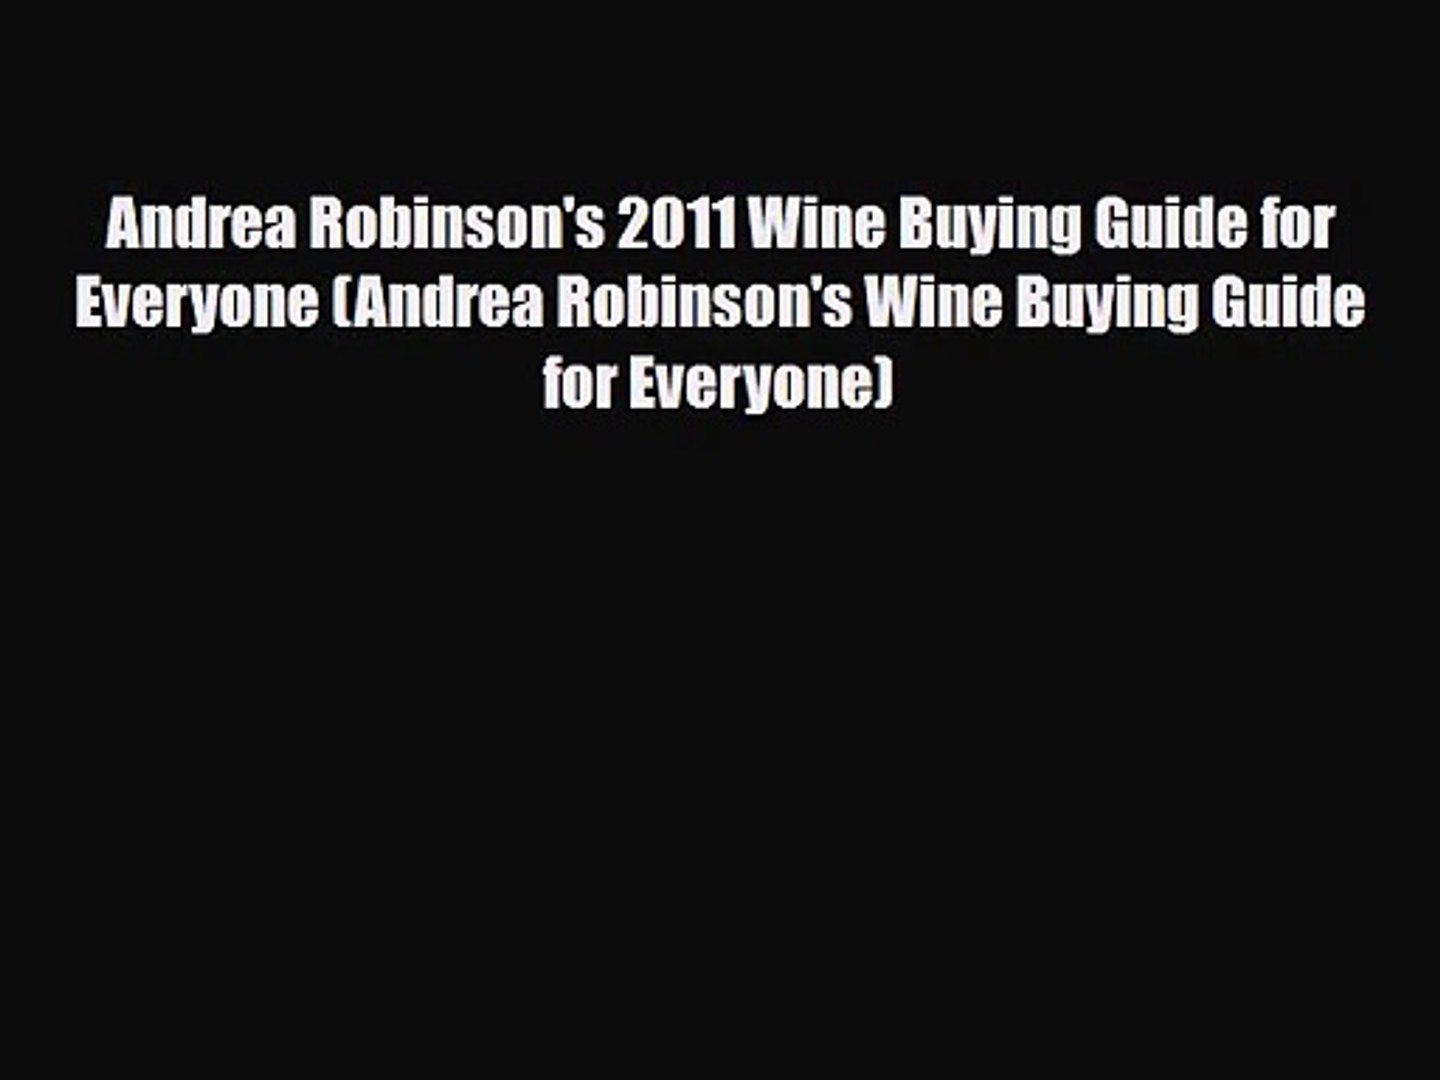 PDF Download Andrea Robinson's 2011 Wine Buying Guide for Everyone (Andrea Robinson's Wine